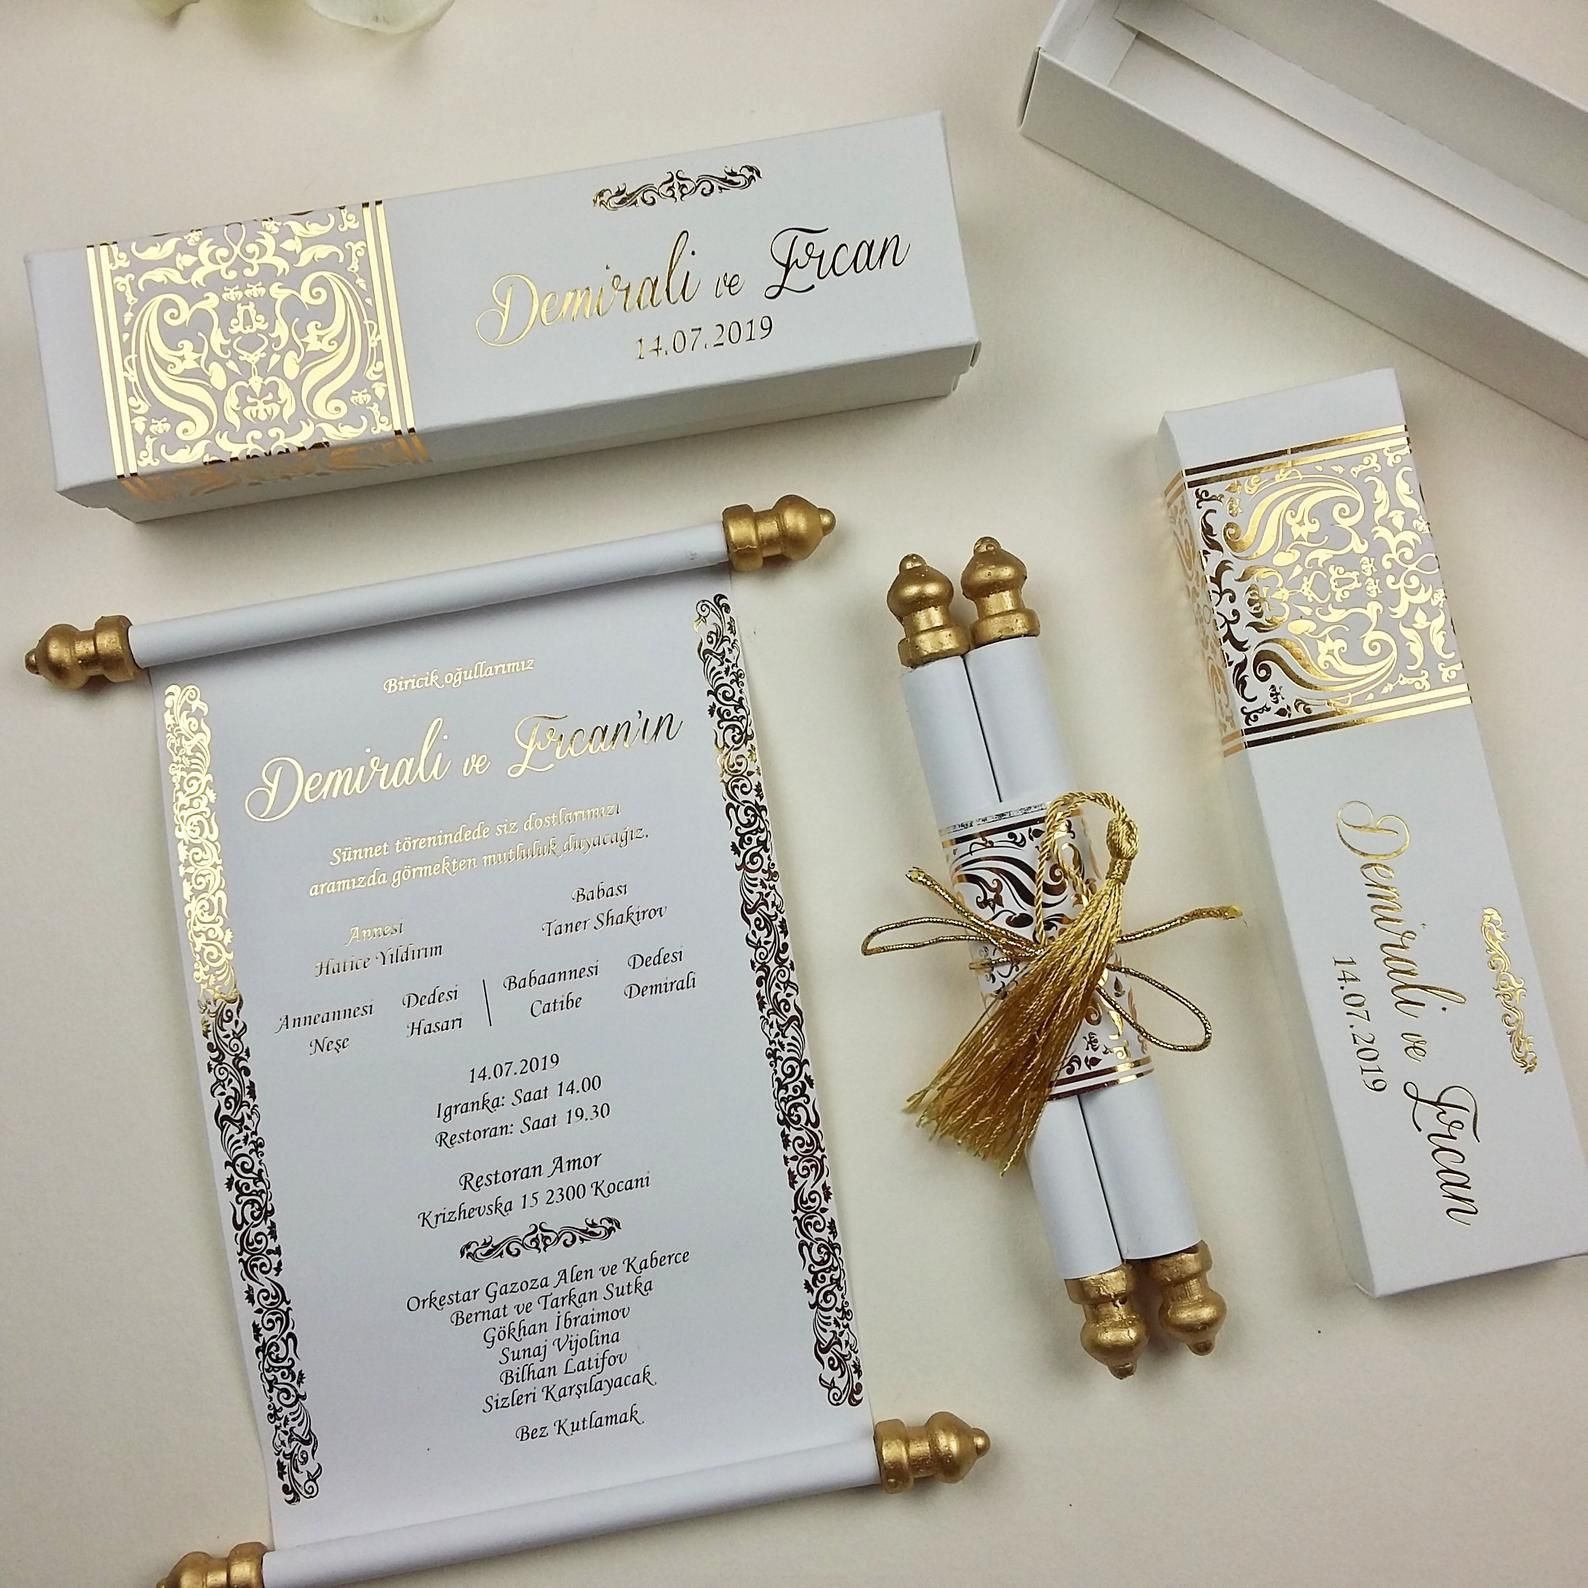 Elegance Handmade Custom Design Real Gold Foil Imprinted Scroll Invitation Boxed Embossed Wedding Invitation Holographic Foil Print Scroll Wedding Invitations Embossed Wedding Invitations Indian Wedding Invitation Cards